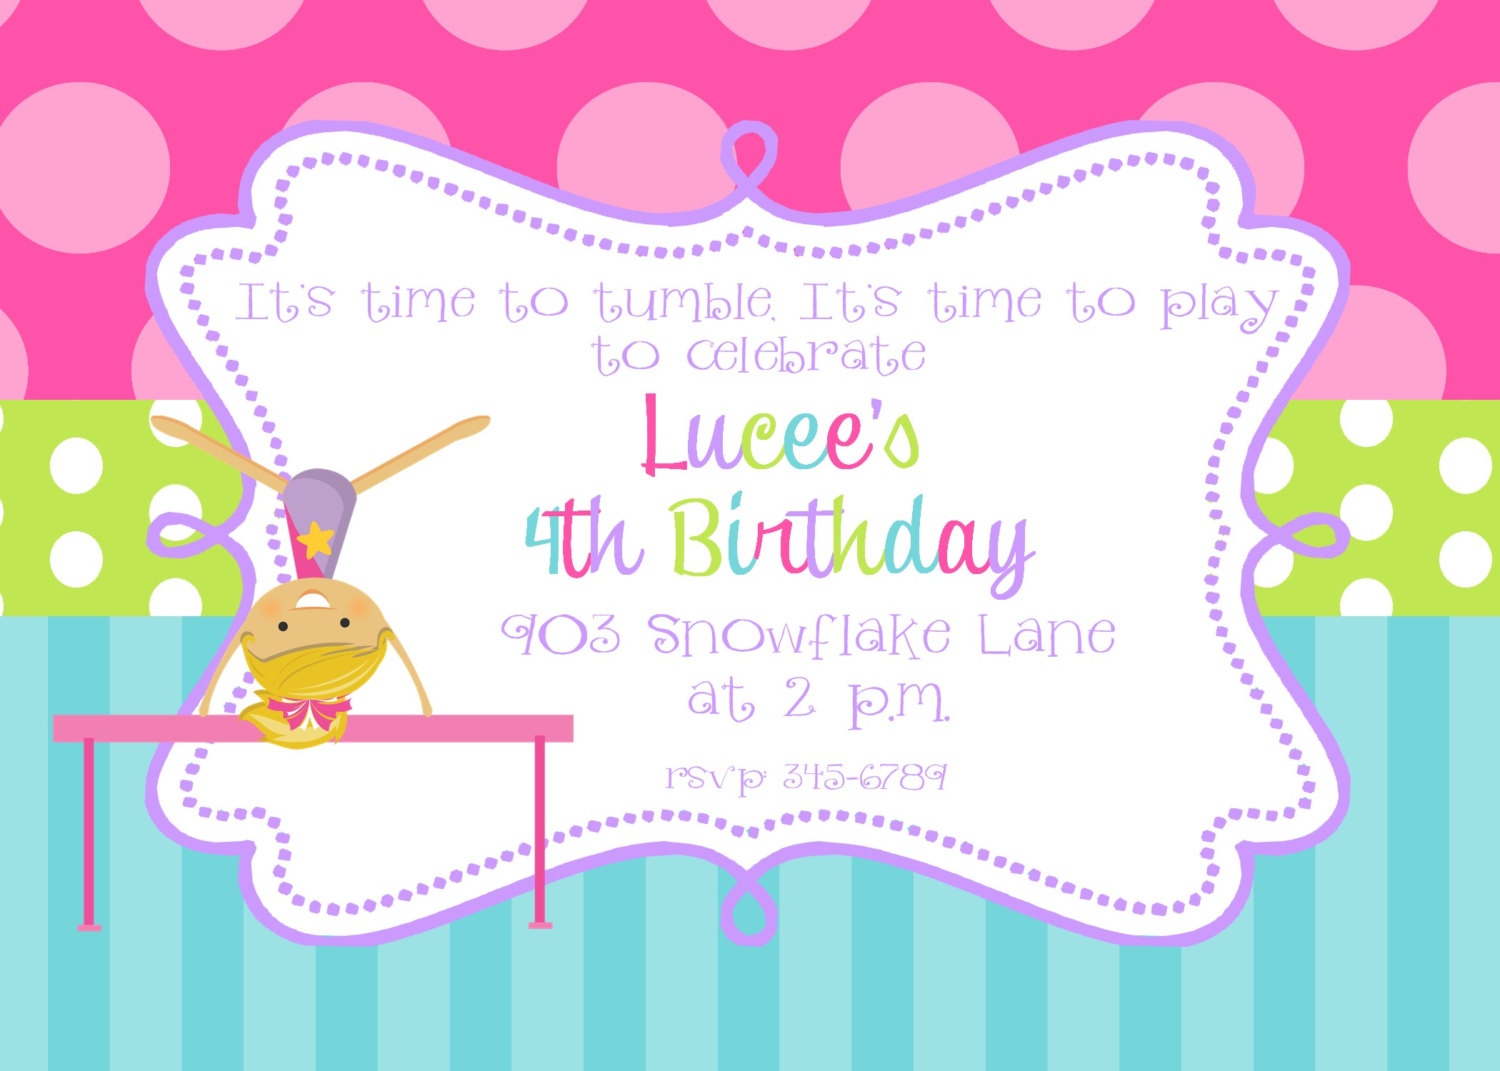 Gymnastics clipart birthday party Birthday Create 211120162 To Birthday